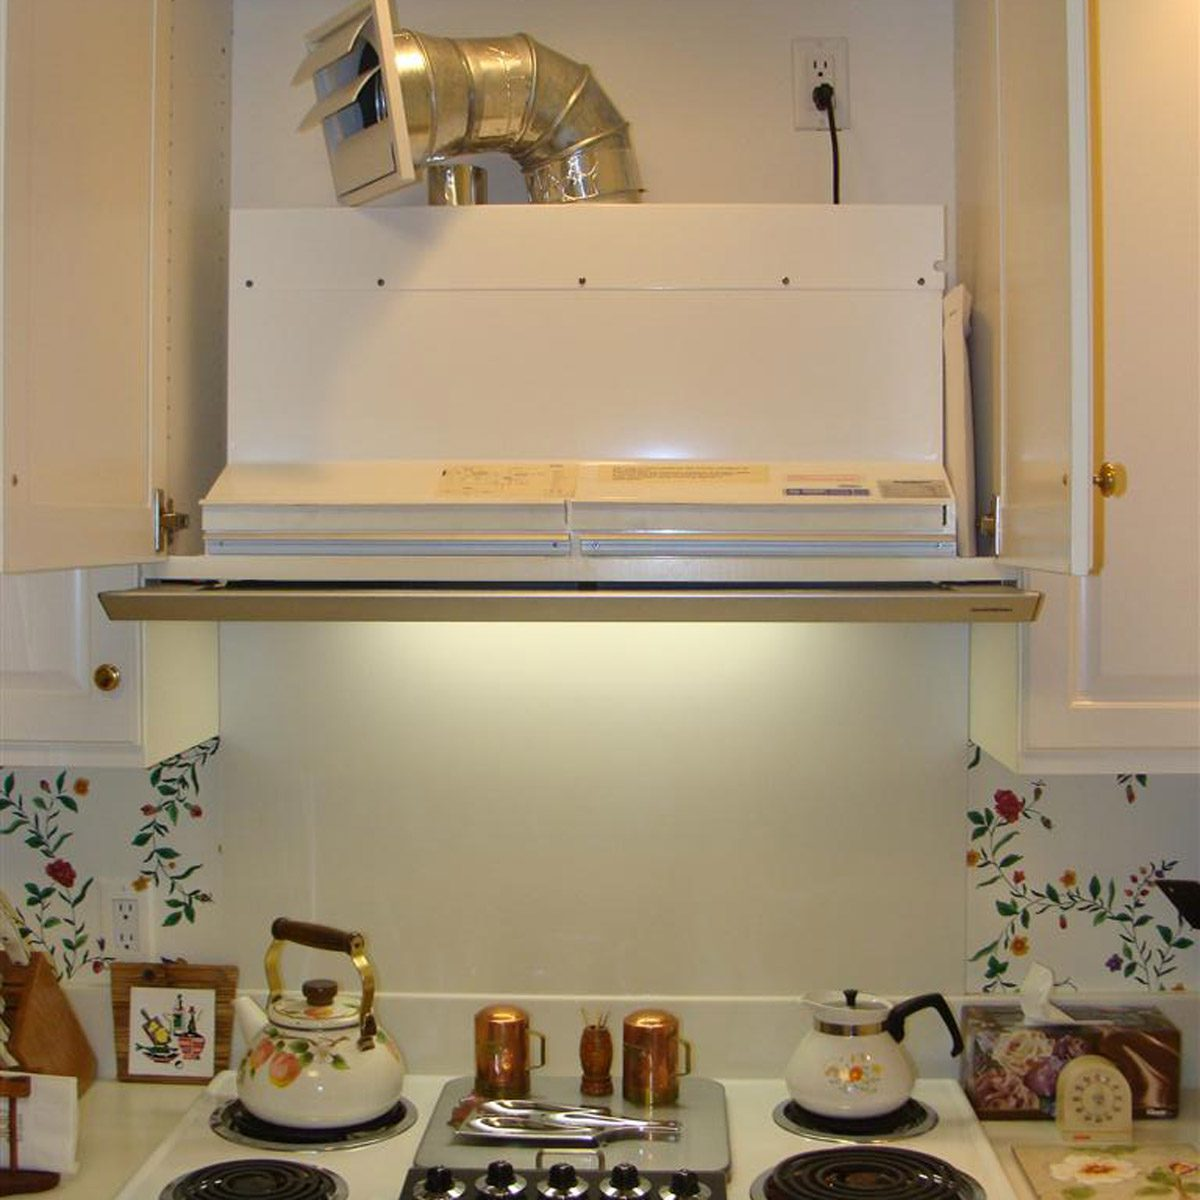 Ceiling kitchen venting